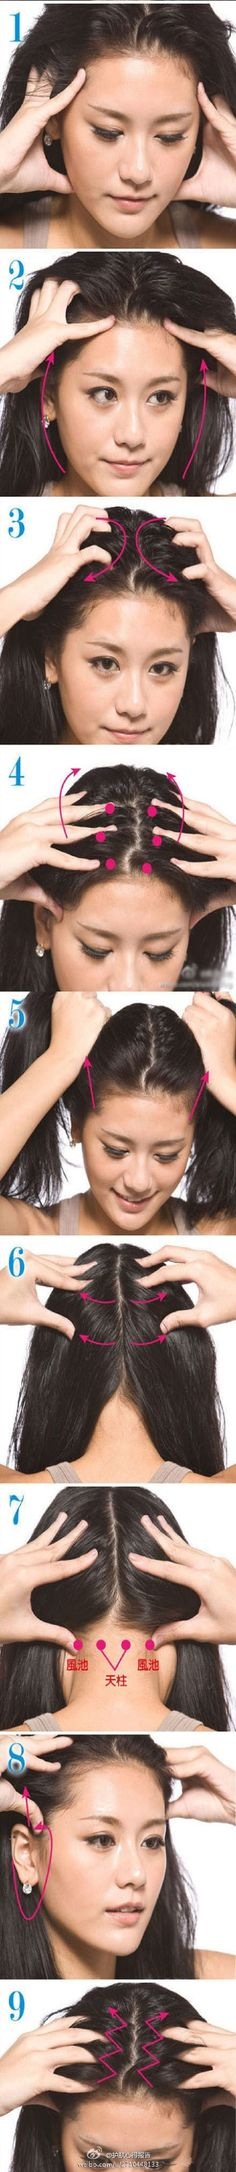 Massage Scalp To Stimulate Hair Growth - 10 Leading Tips and DIYs to Grow Your…